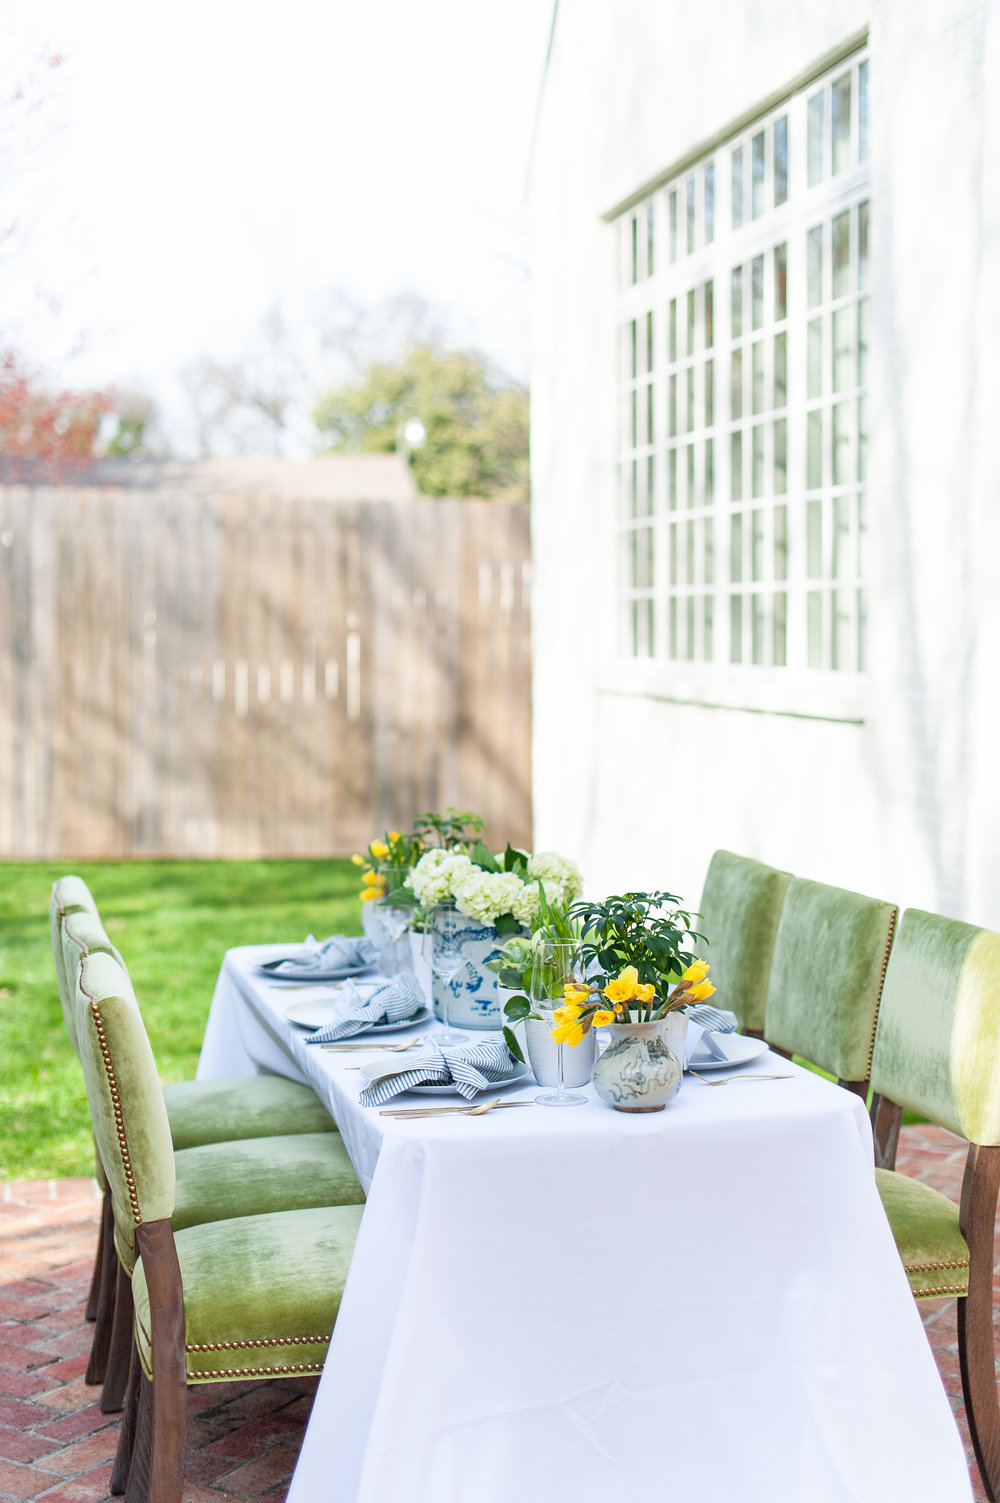 EasterBrunch_CedarLane_TSG-15.jpg